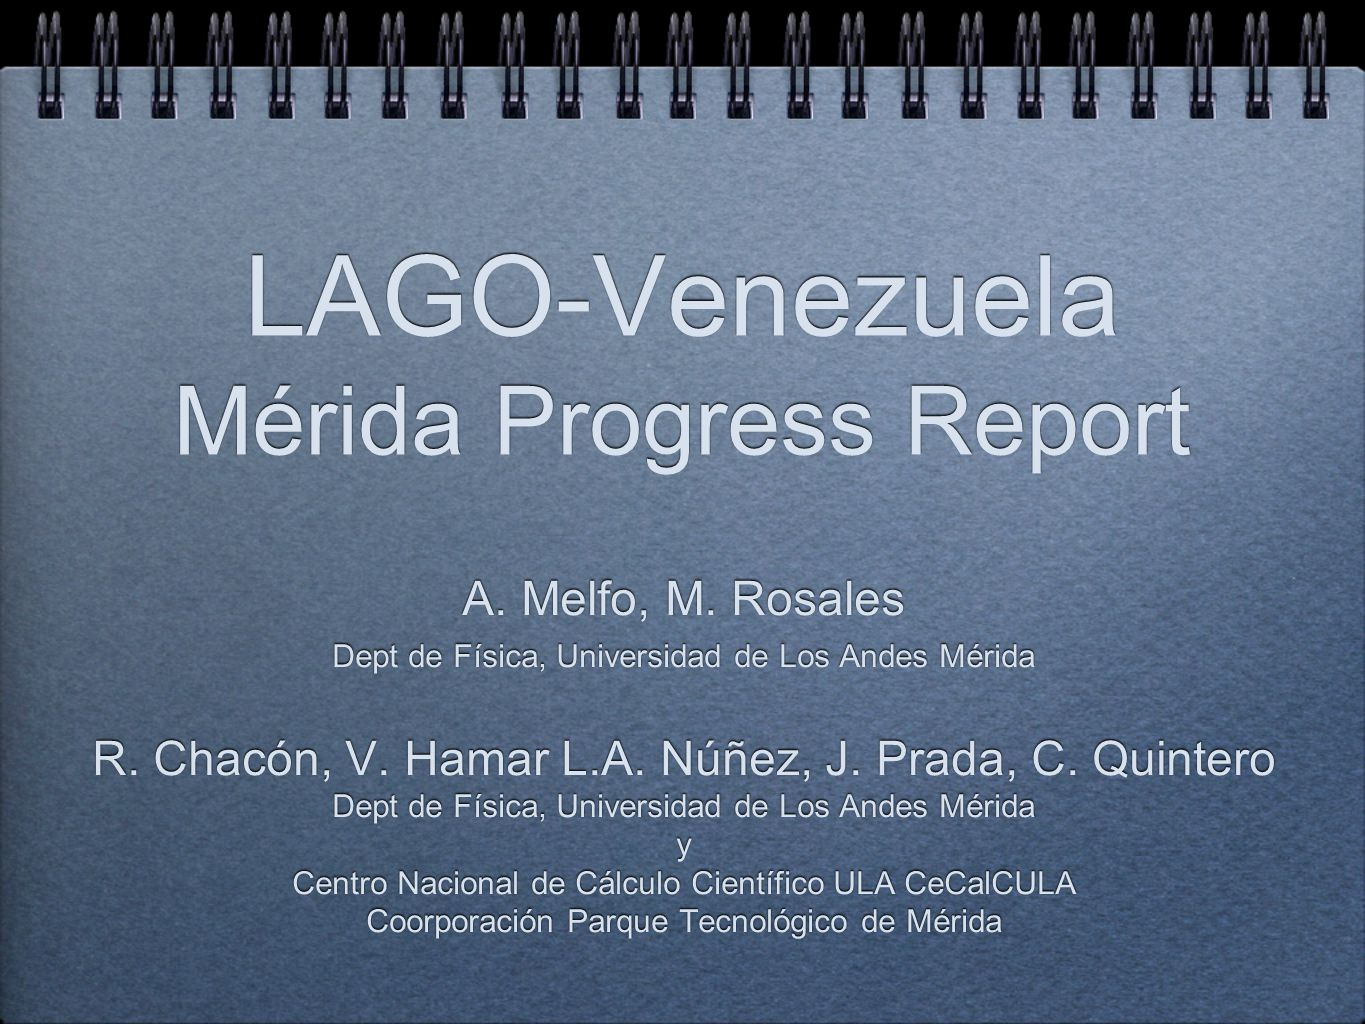 LAGO-Venezuela Mérida Progress Report A. Melfo, M.